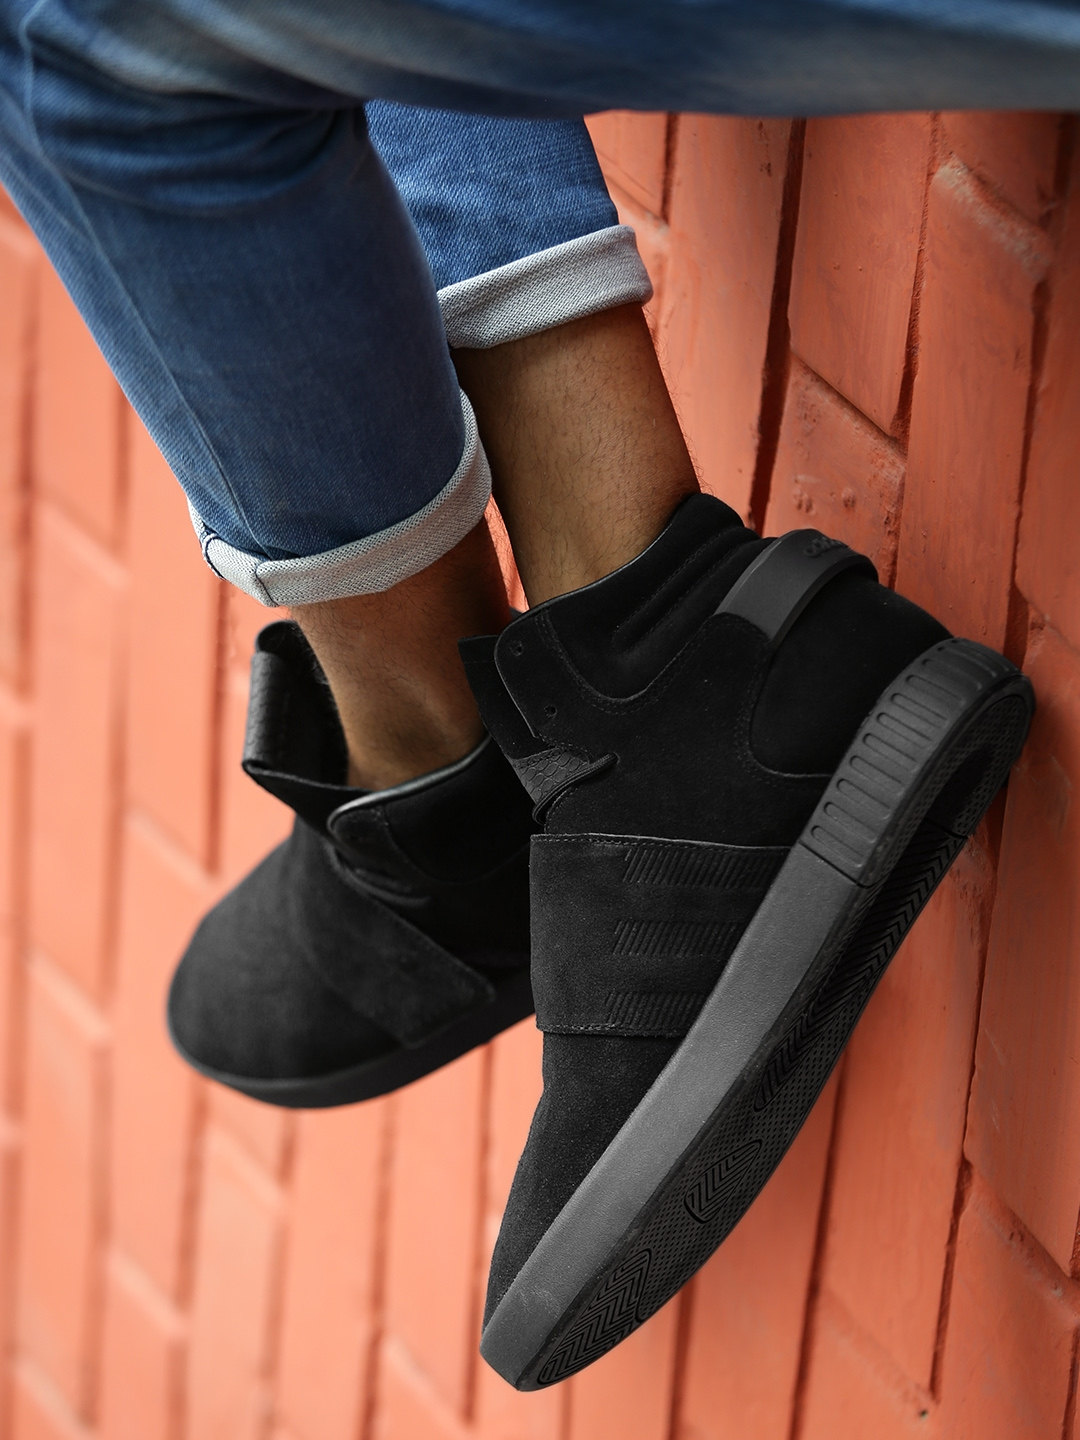 afac511d468d ADIDAS Originals Men Black Tubular Invader Strap Leather Mid-Top Sneakers